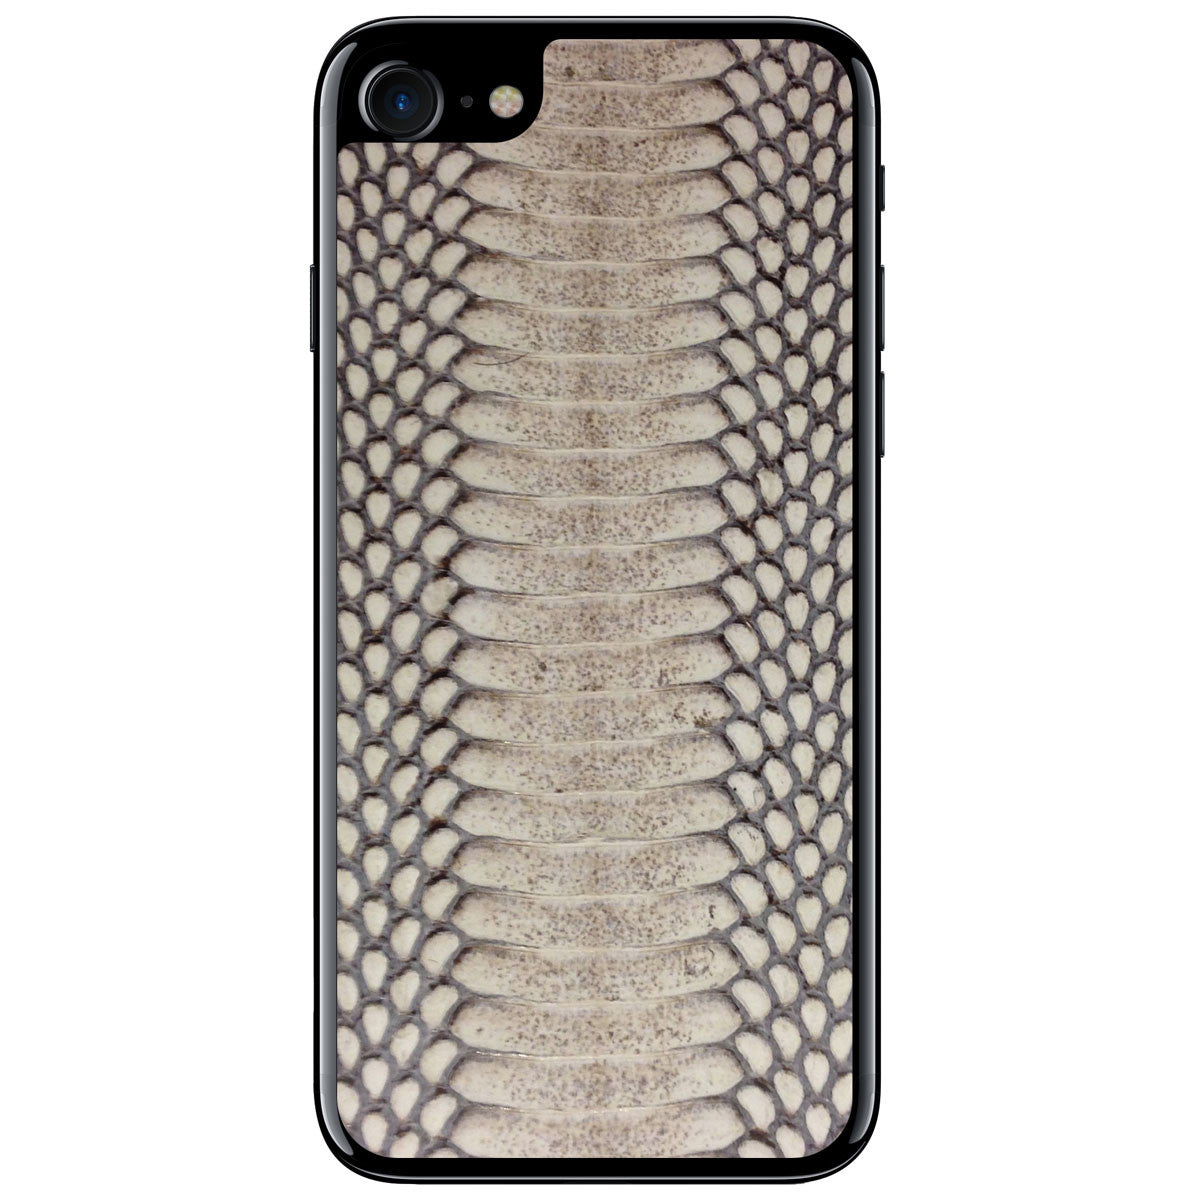 Cobra iPhone 7 Leather Skin